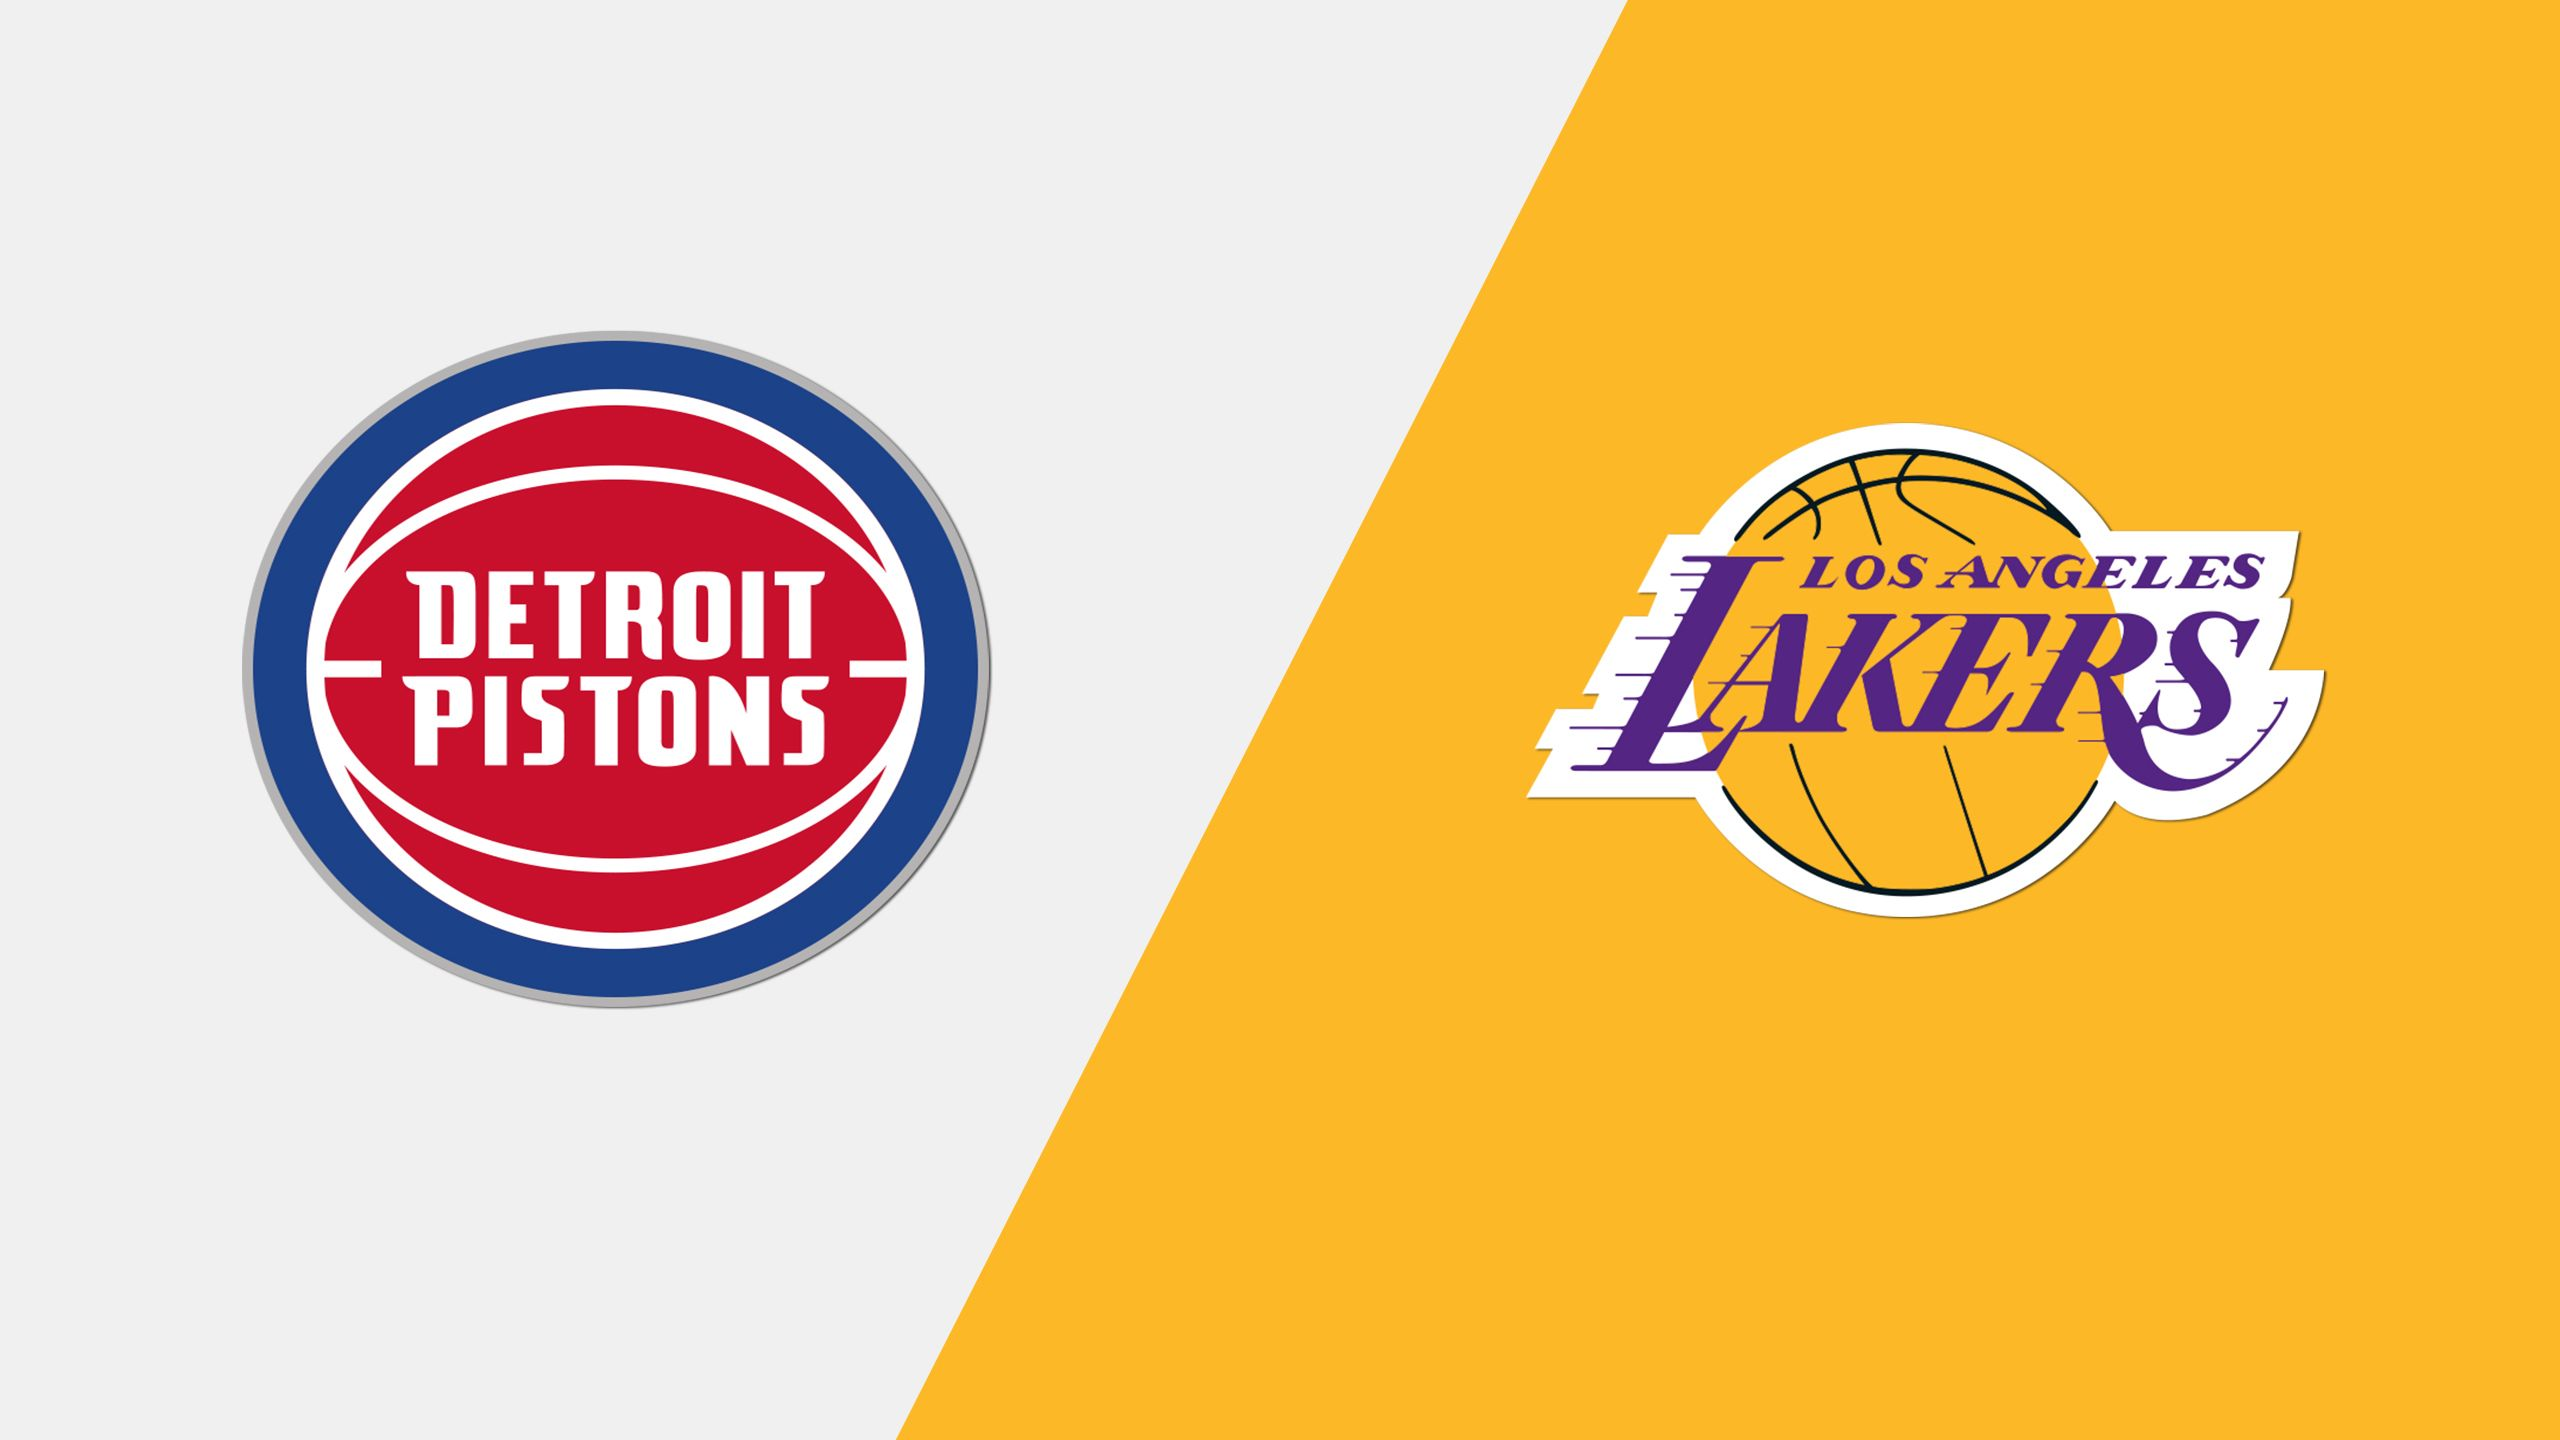 Detroit Pistons vs. Los Angeles Lakers (Quarterfinal)